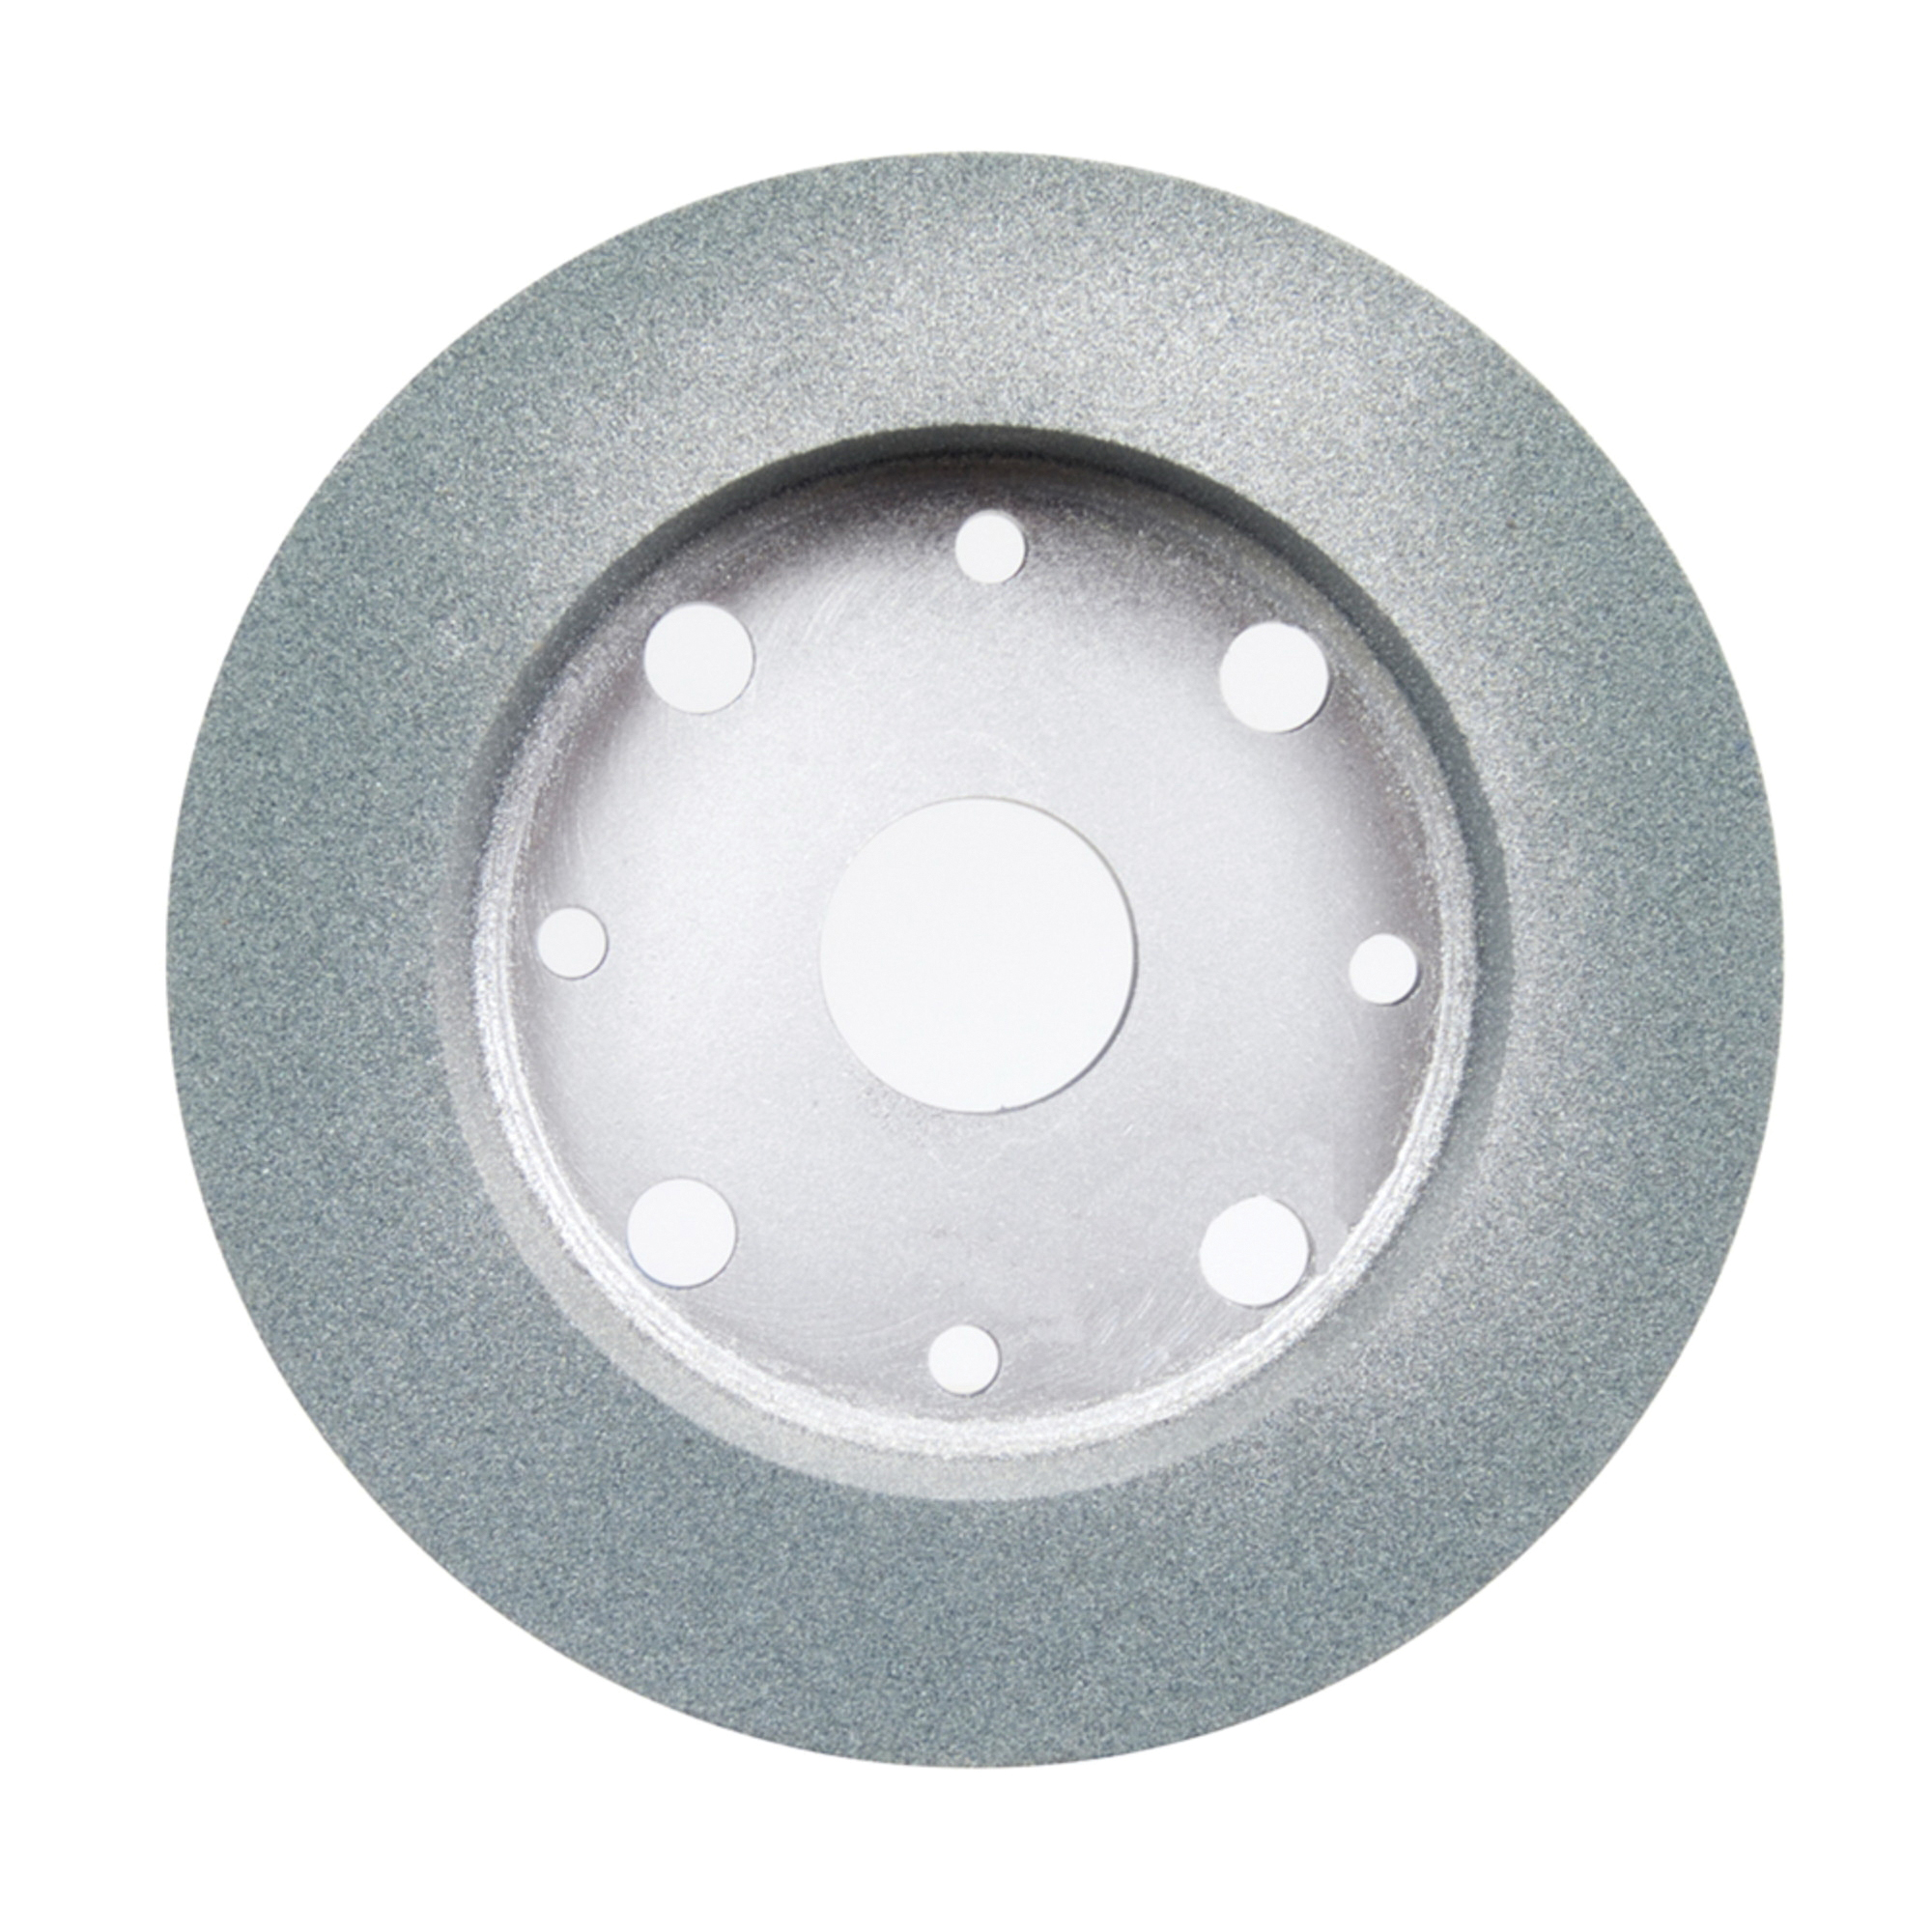 Norton® 66252838345 39C Cylinder Toolroom Wheel, 6 in Dia x 1-1/4 in THK, 4 in Center Hole, 60 Grit, Silicon Carbide Abrasive